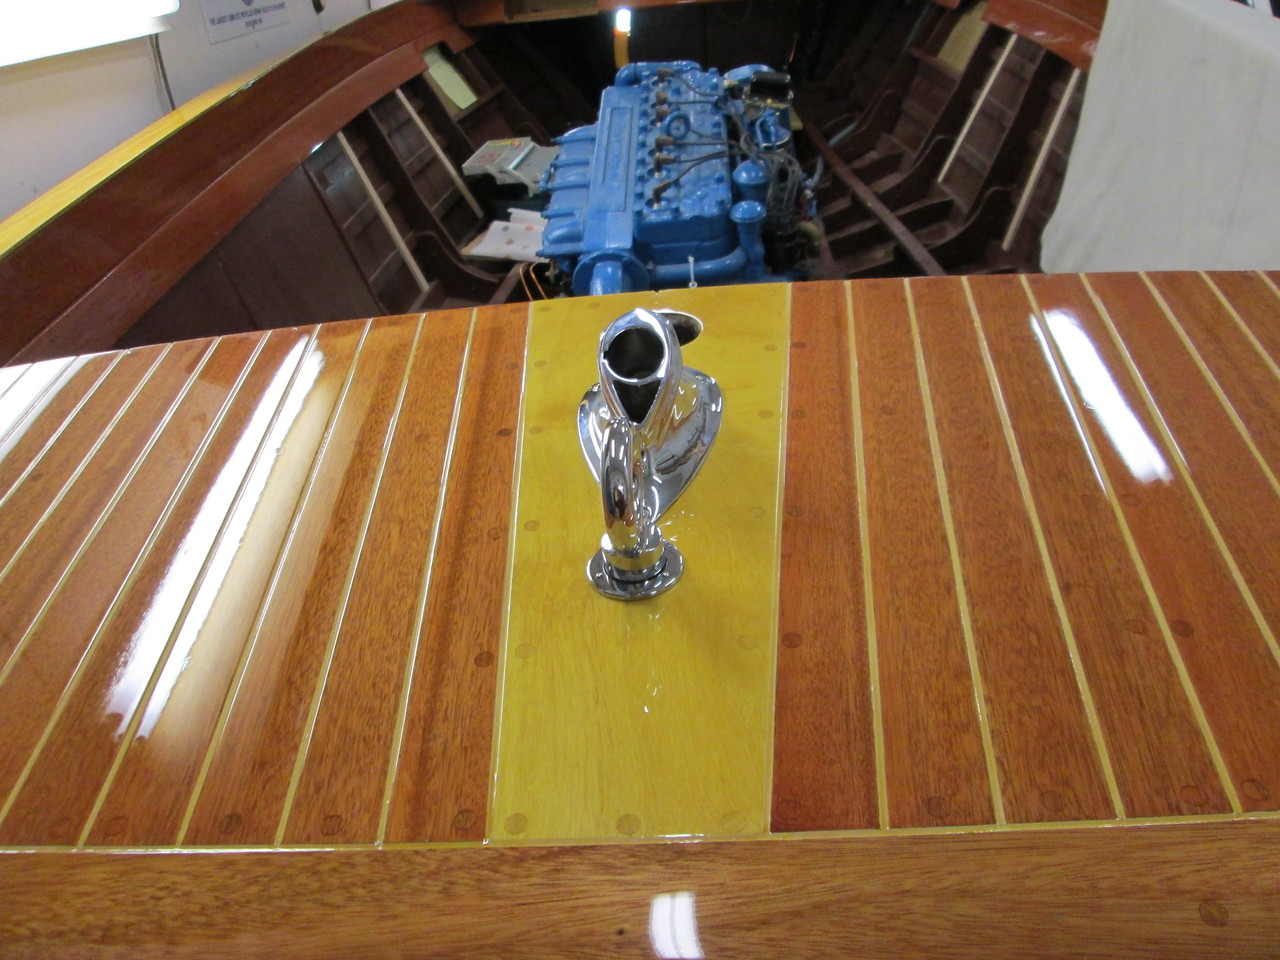 Rear lifting eye and stern light mount install so we could wire the stern light.